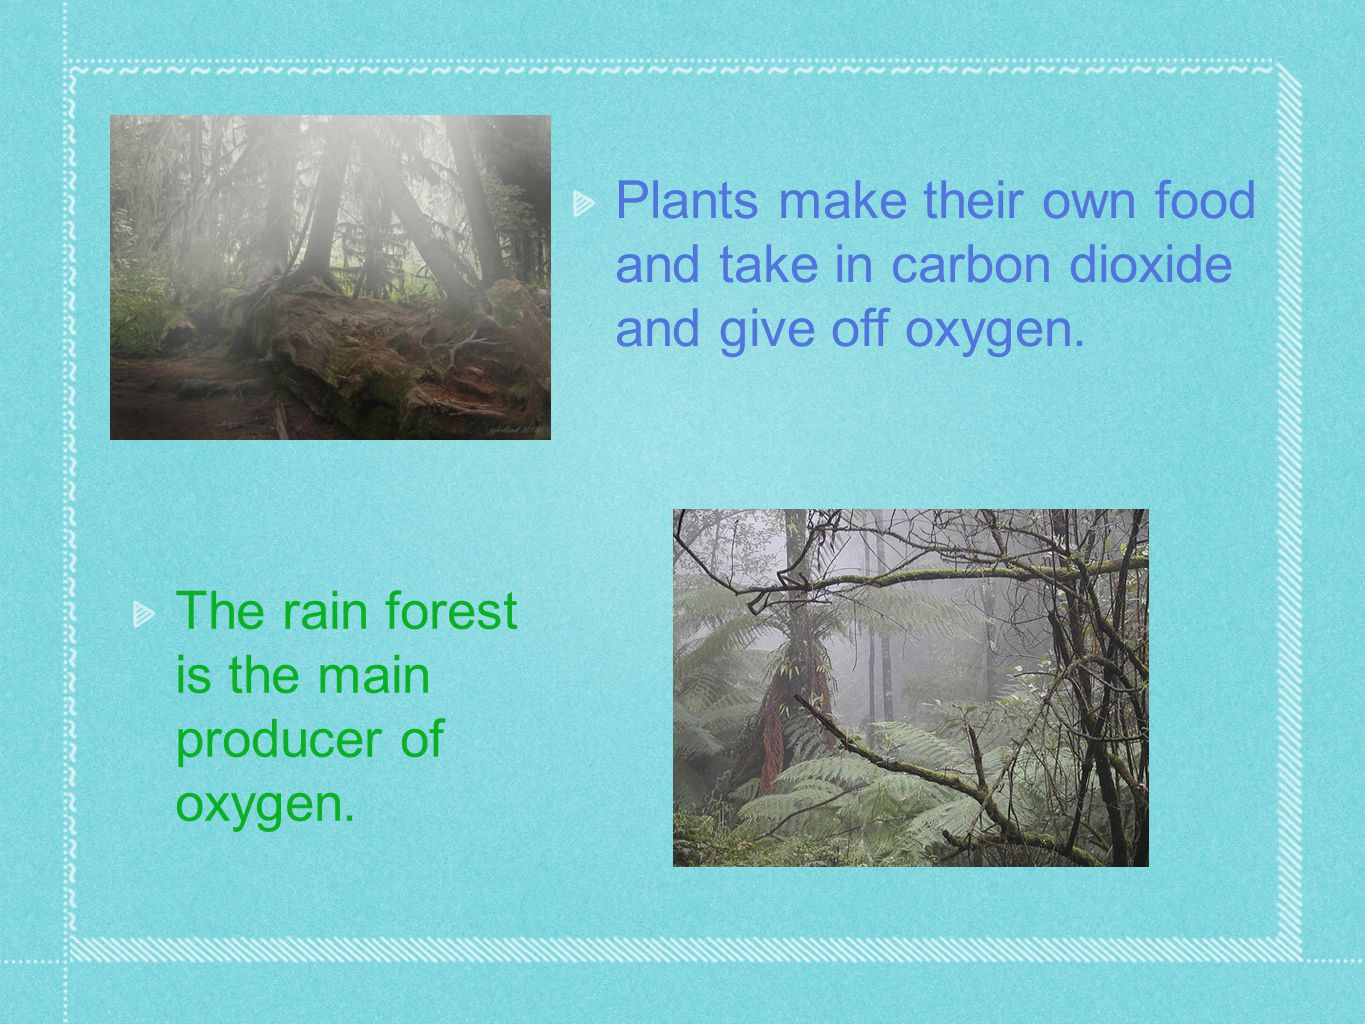 Plants make their own food and take in carbon dioxide and give off oxygen. The rain forest is the main producer of oxygen.